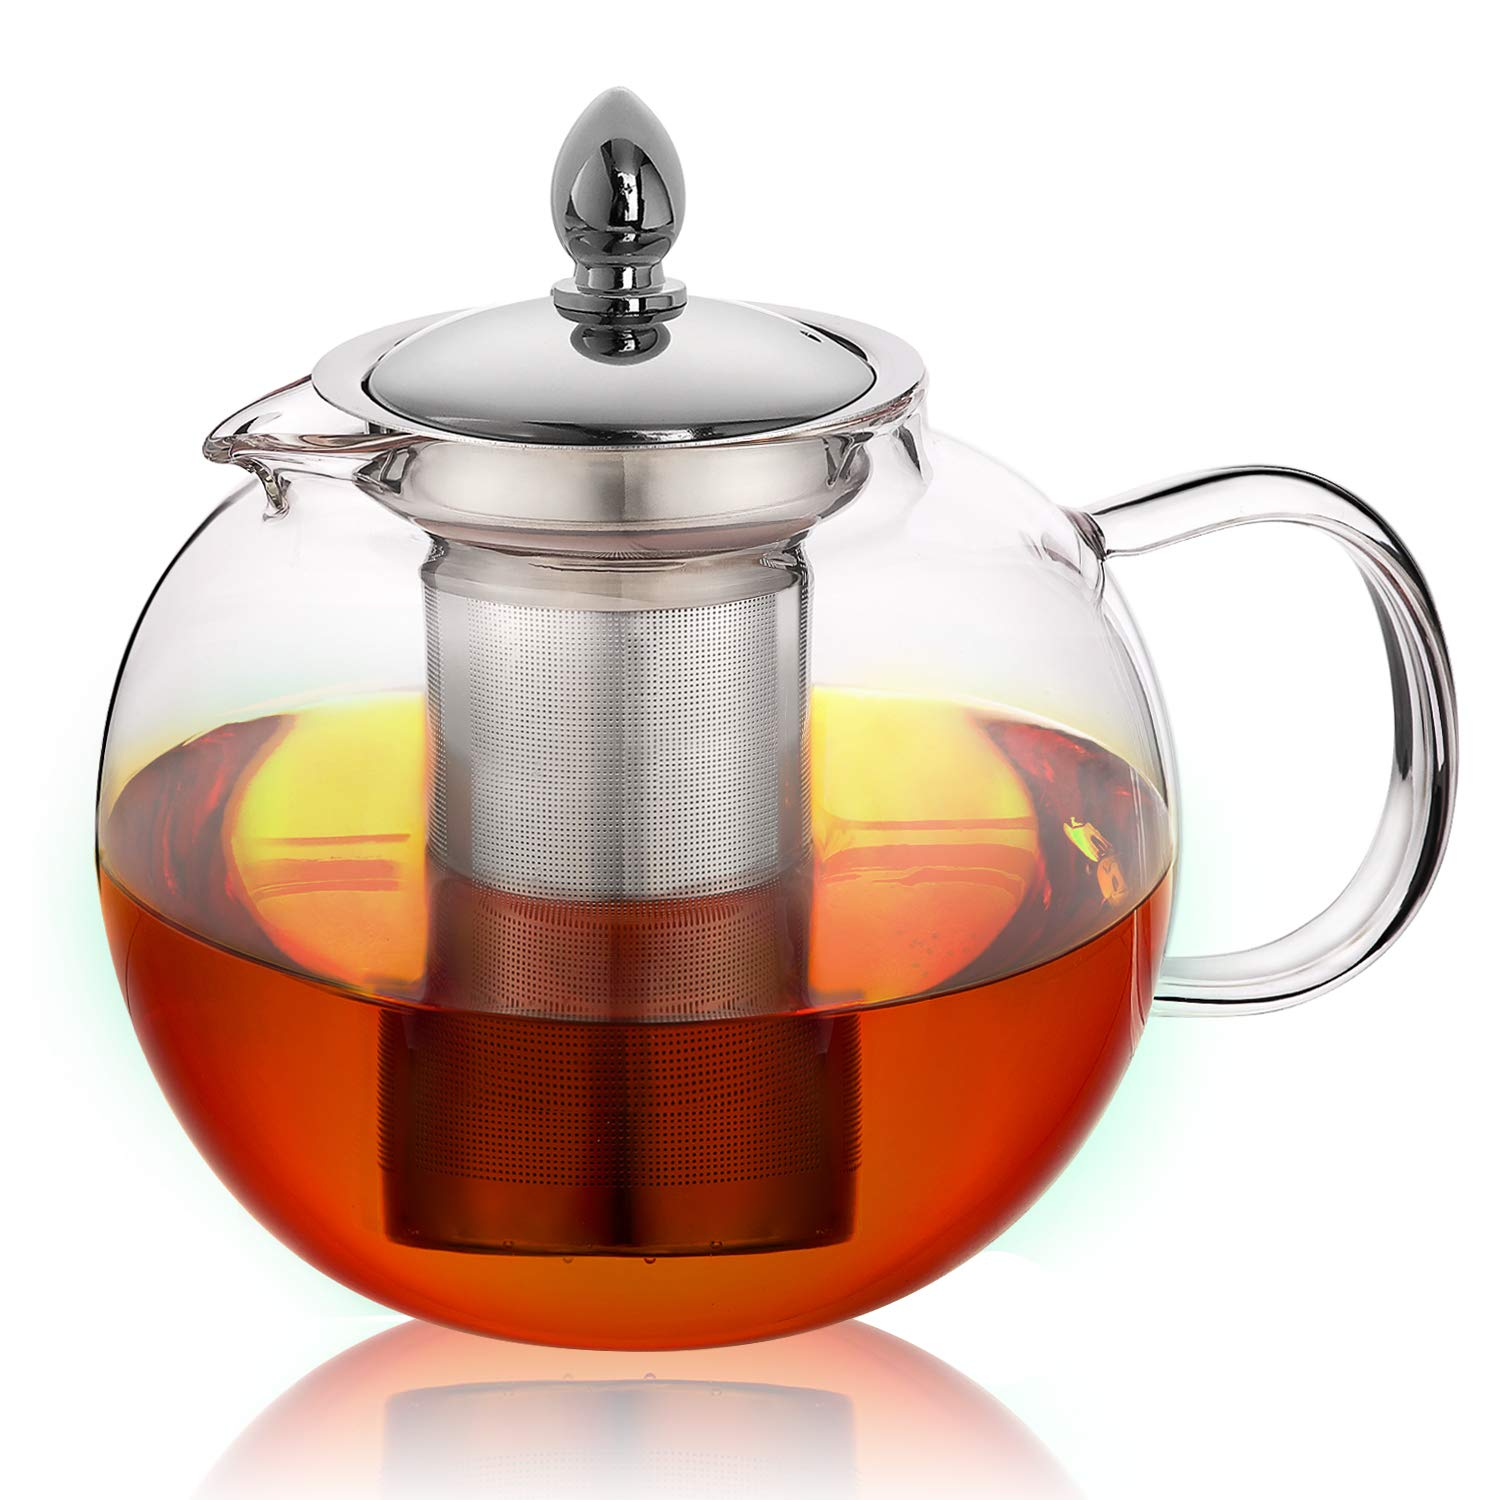 Hiware Glass Teapot with Removable Infuser, 45oz Blooming and Loose Leaf Tea Pot, Microwavable and Stovetop Safe Tea Pot and Tea Strainer HIGT1400